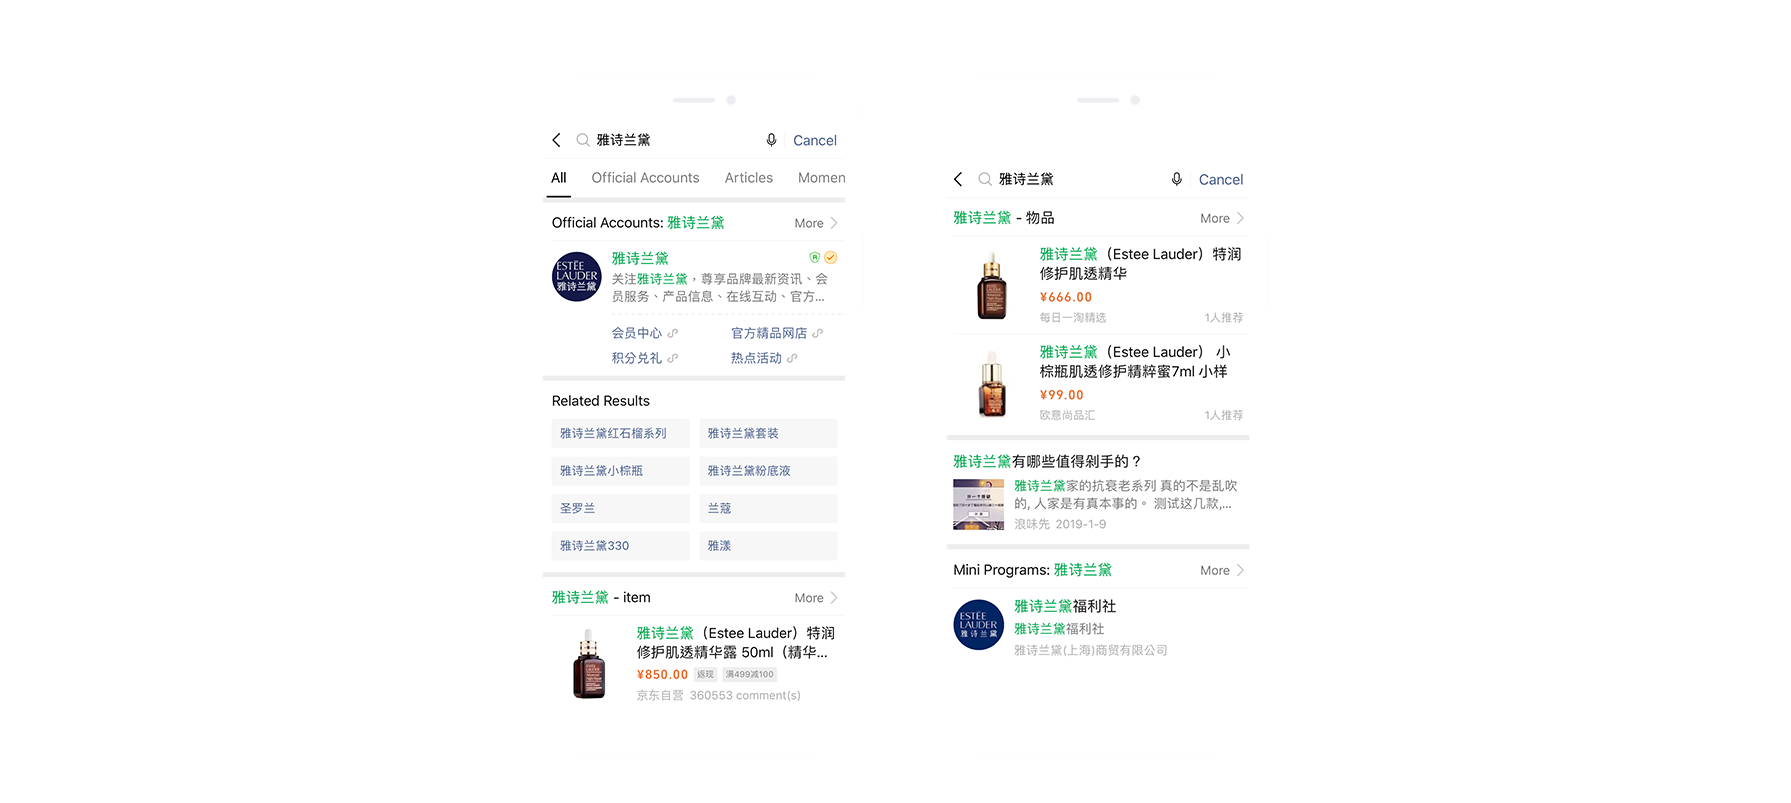 WeChat Estee Lauder search functions section